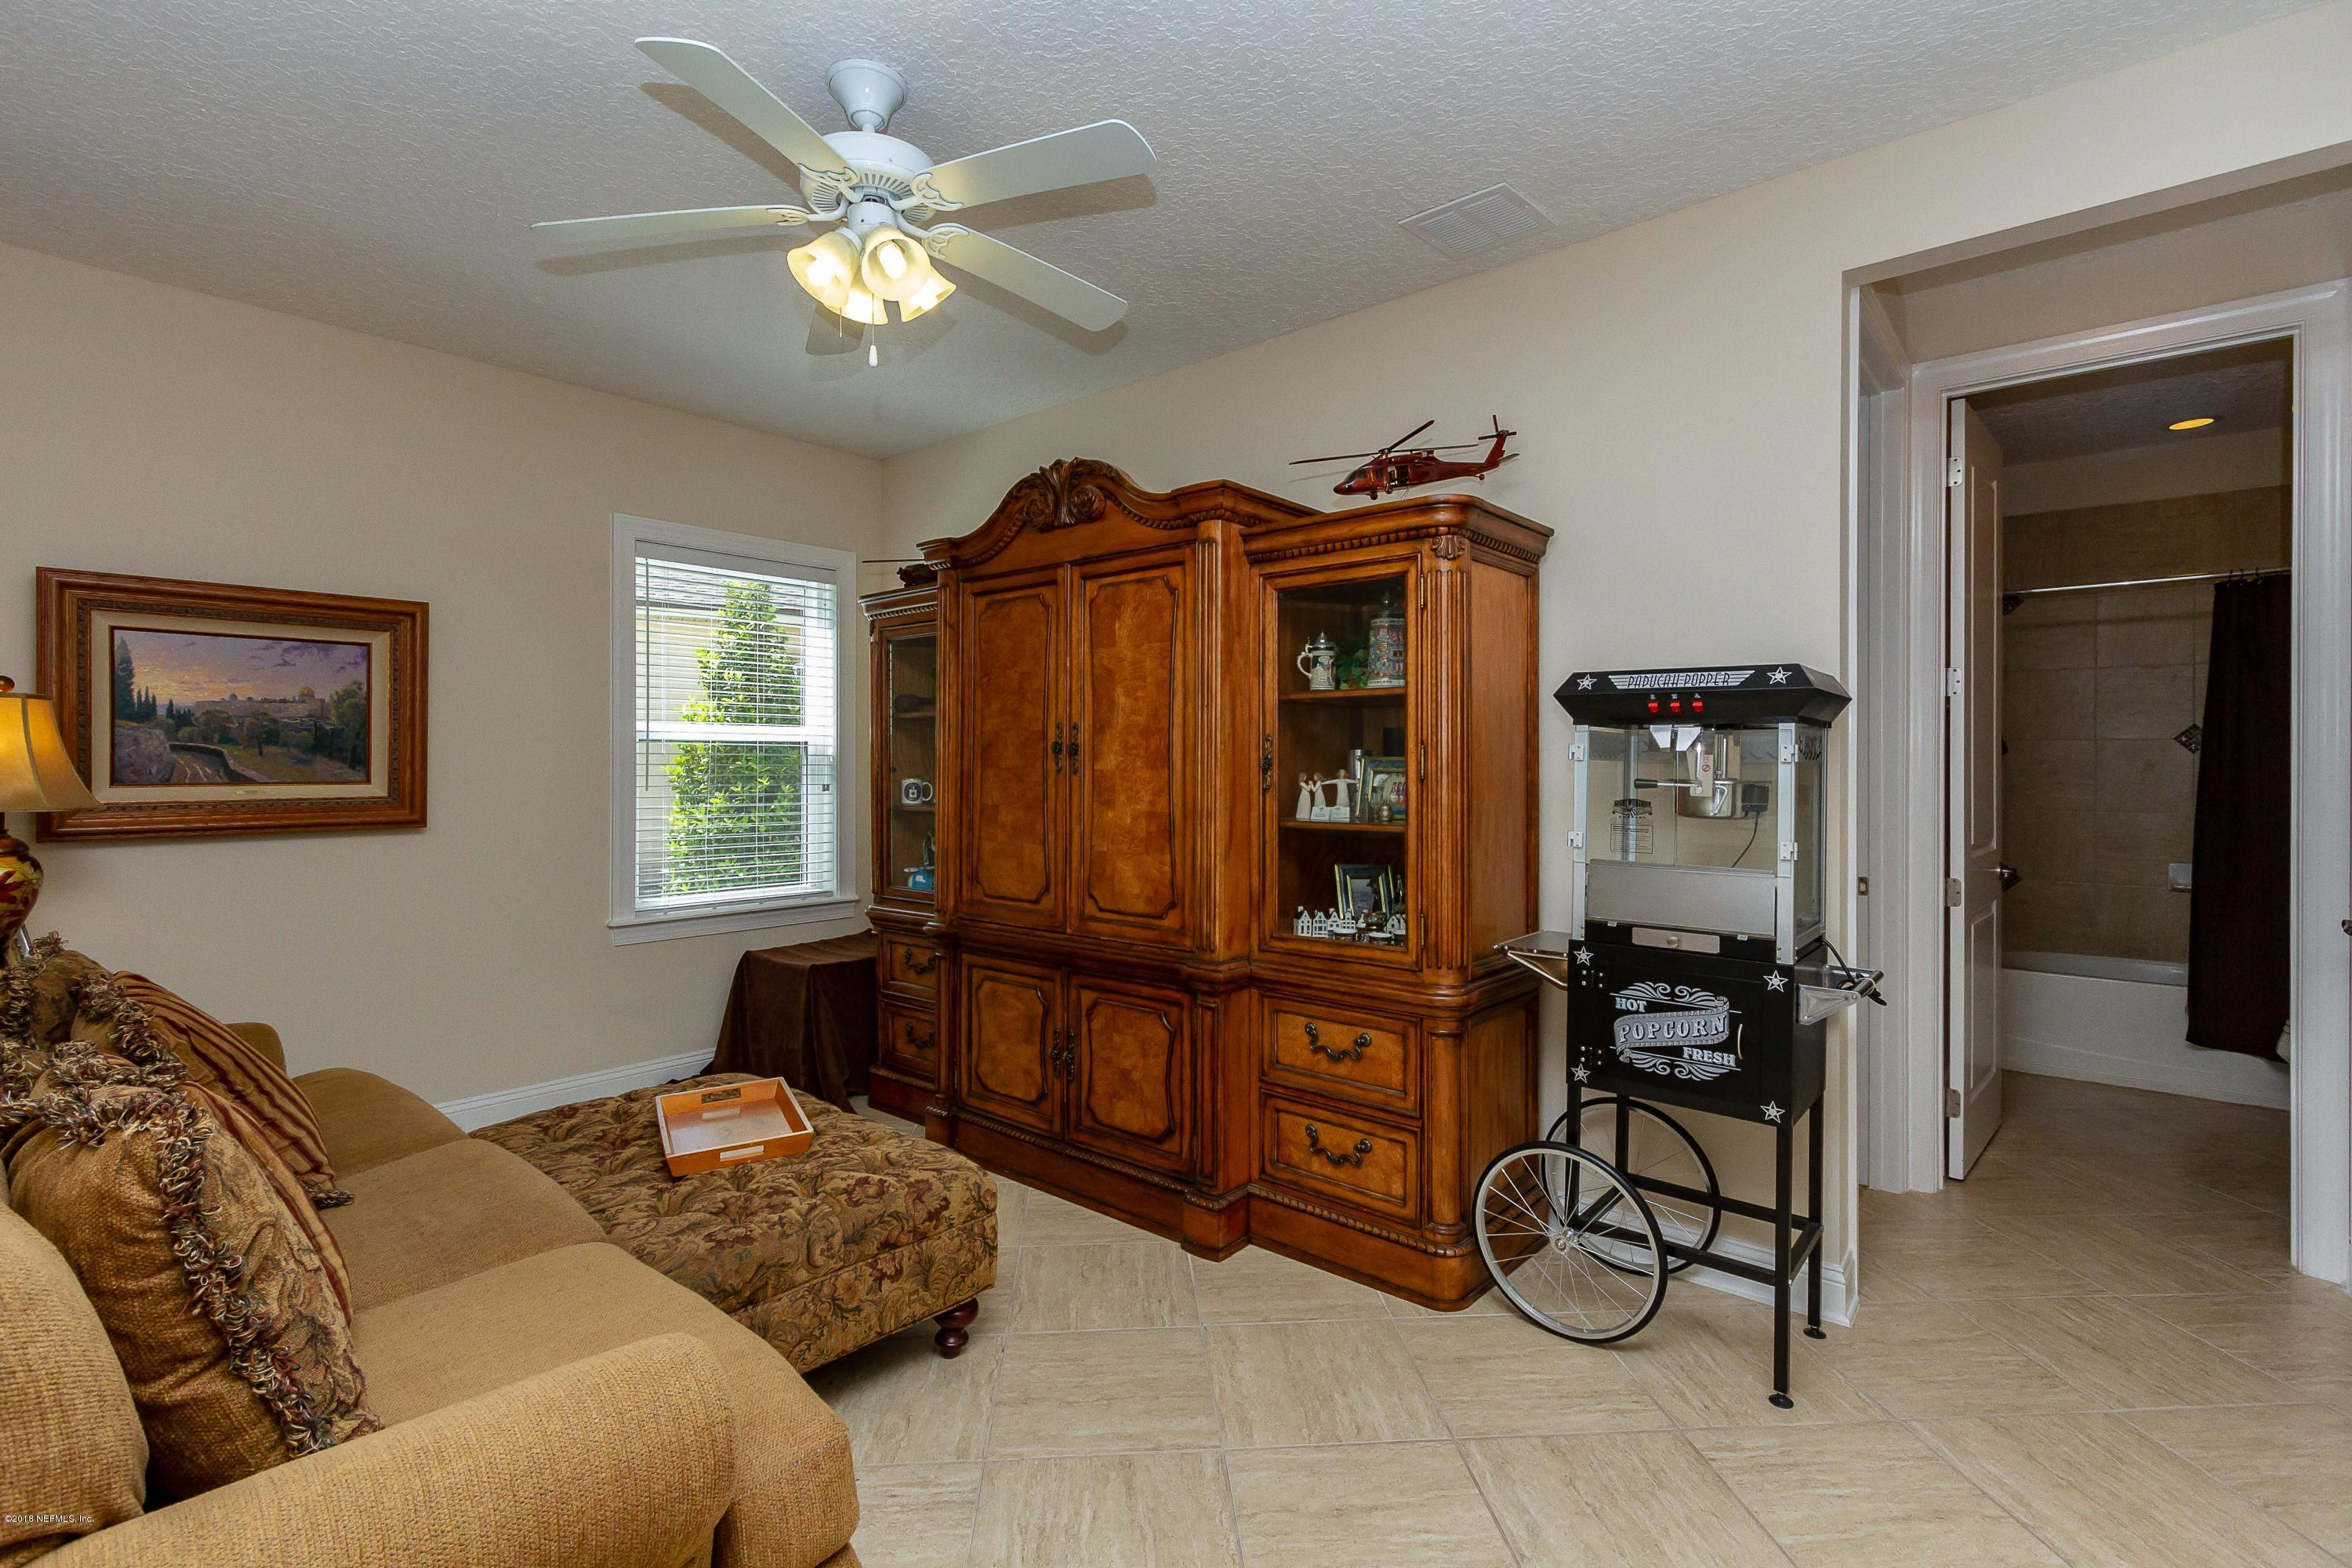 28 GULFSTREAM, PONTE VEDRA, FLORIDA 32081, 4 Bedrooms Bedrooms, ,4 BathroomsBathrooms,Residential - single family,For sale,GULFSTREAM,989851